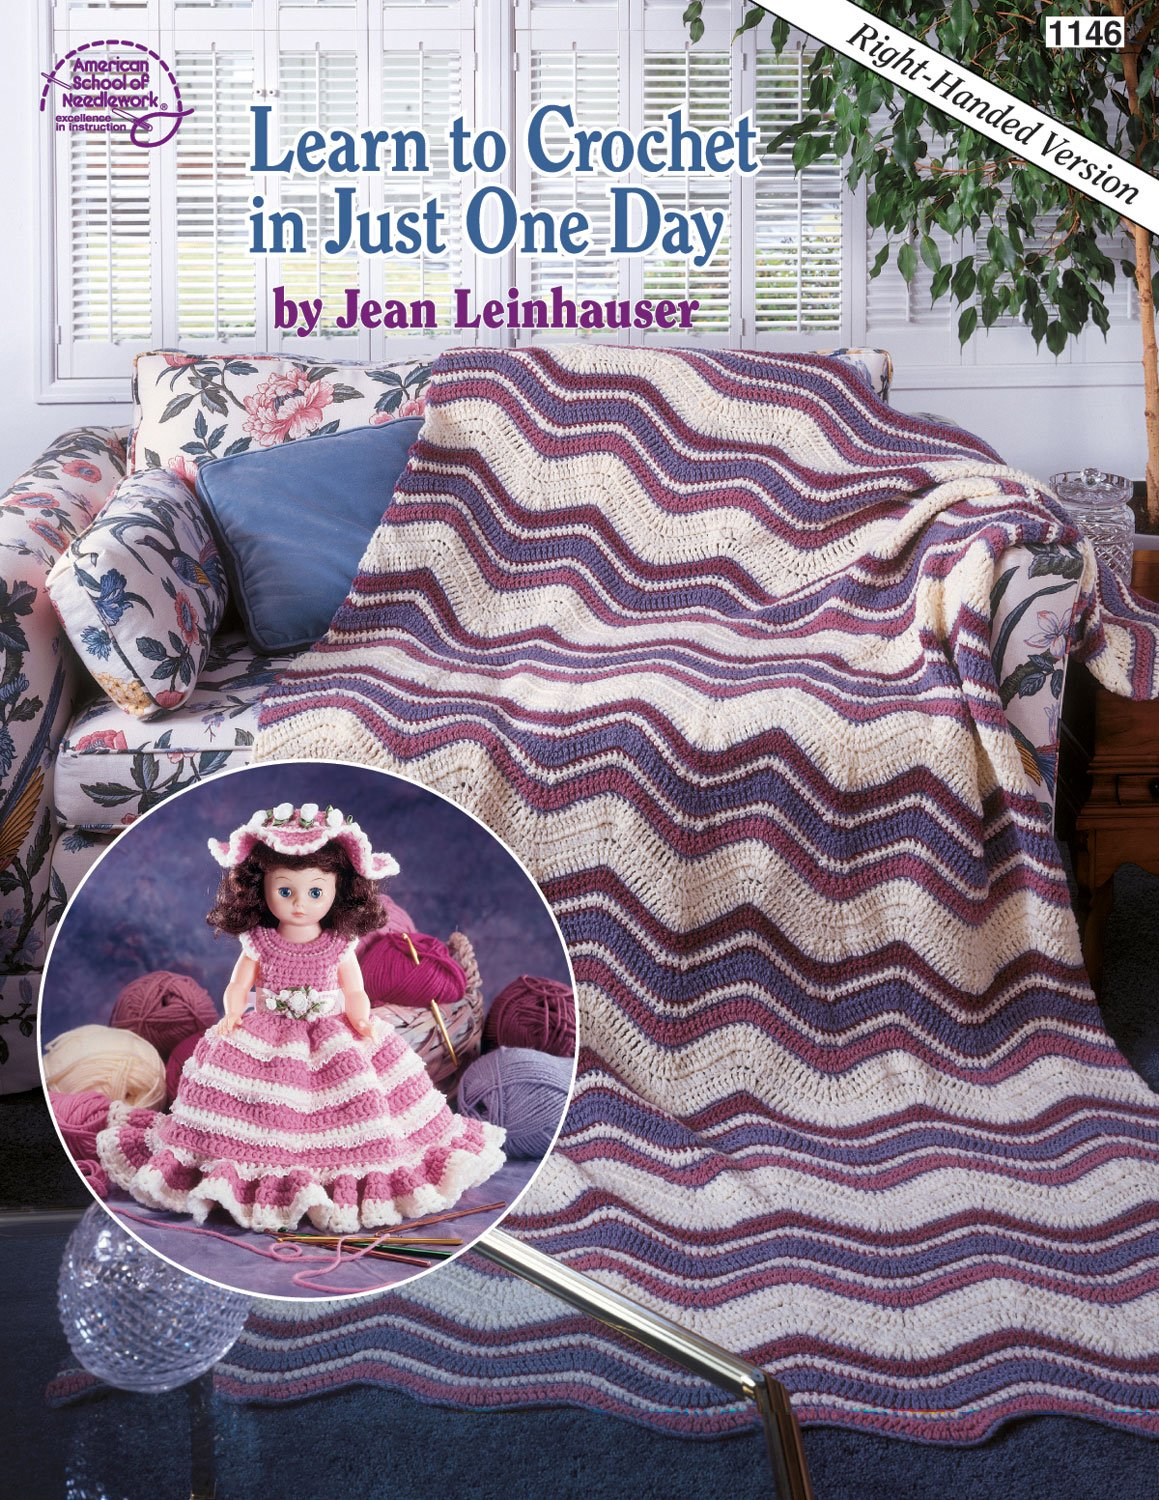 Learn To Crochet In Just One Day Right Handed Version Book 1146